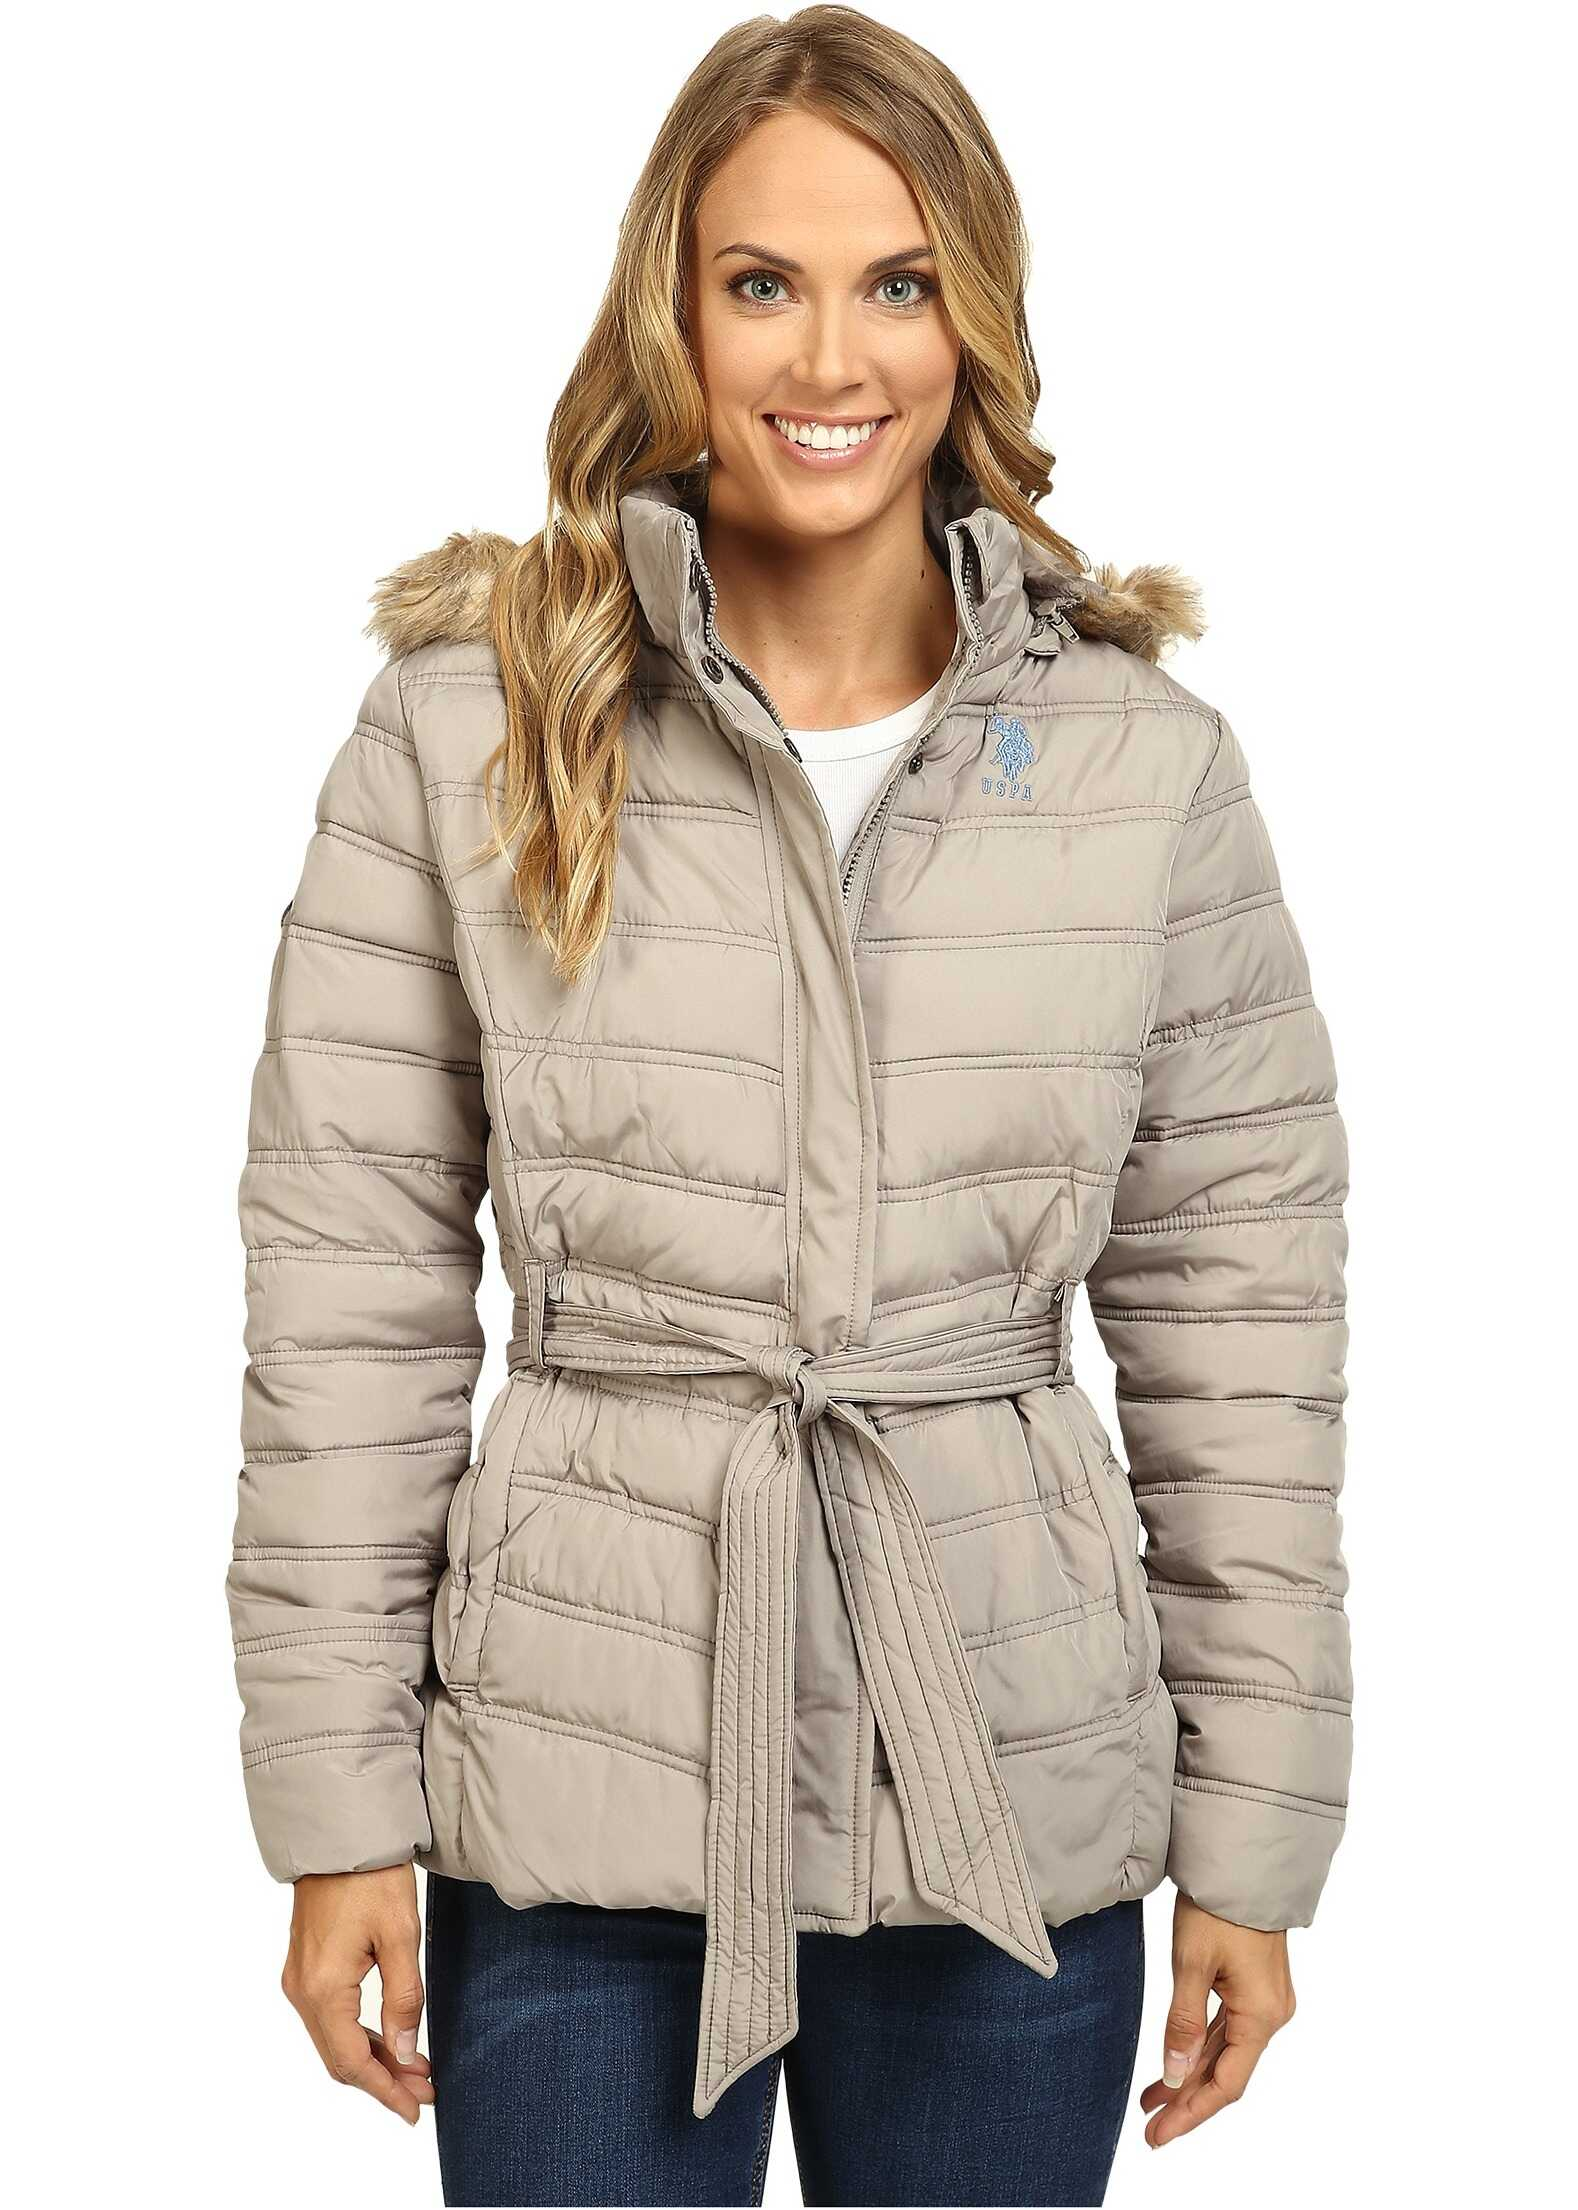 U.S. POLO ASSN. Belted Puffer Jacket with Faux Fur Hood Trim Moonrock